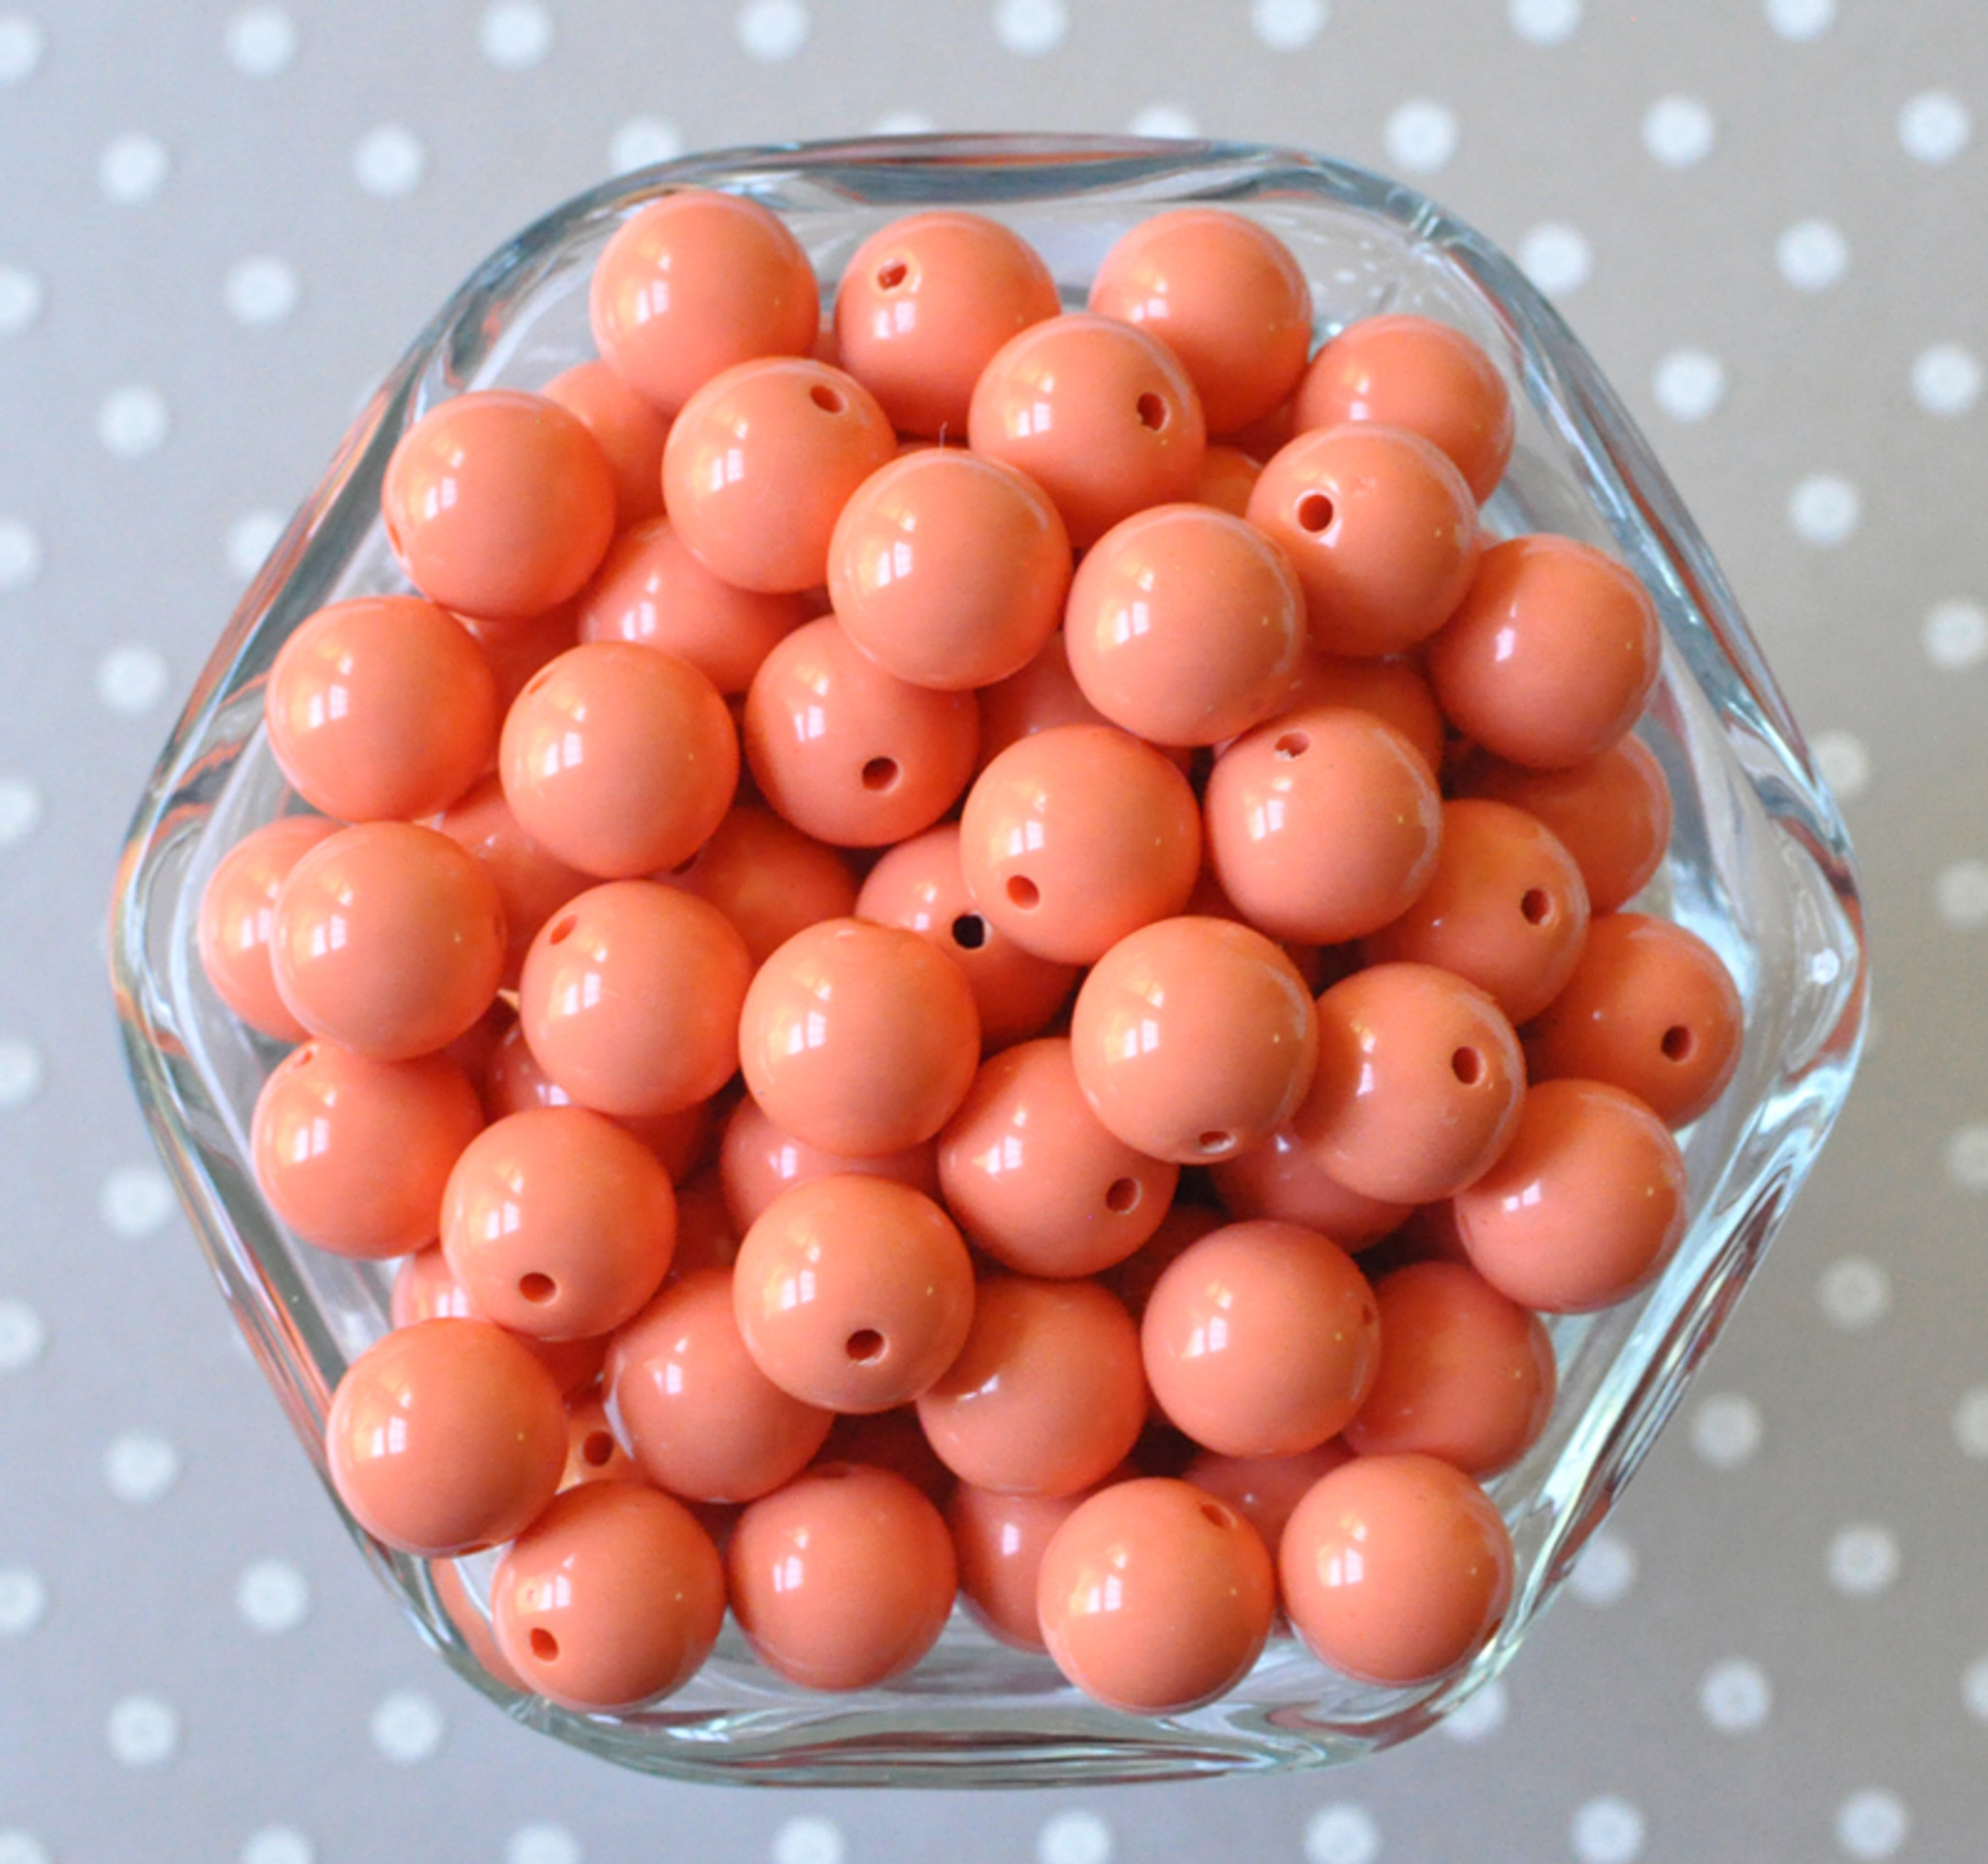 12mm Apricot solid bubblegum beads for chunky style jewelry